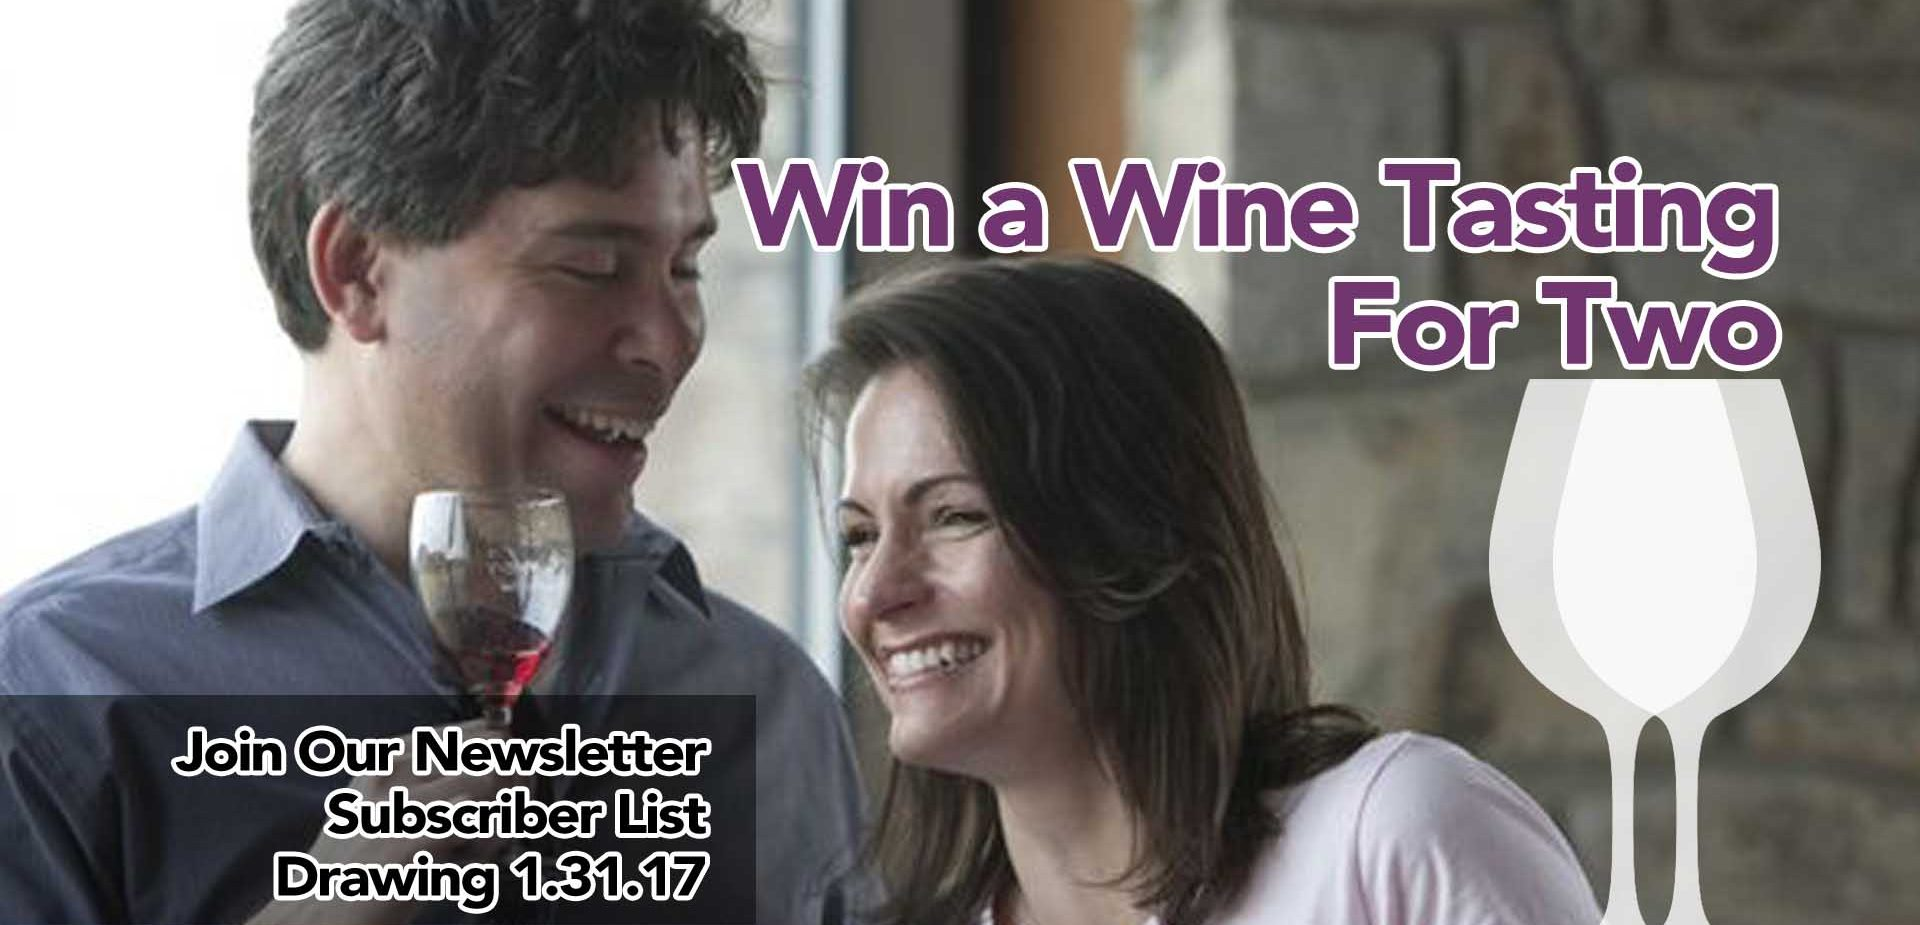 Wine a Wine Tasting For Two By Joining Our Newsletter Subsciber List